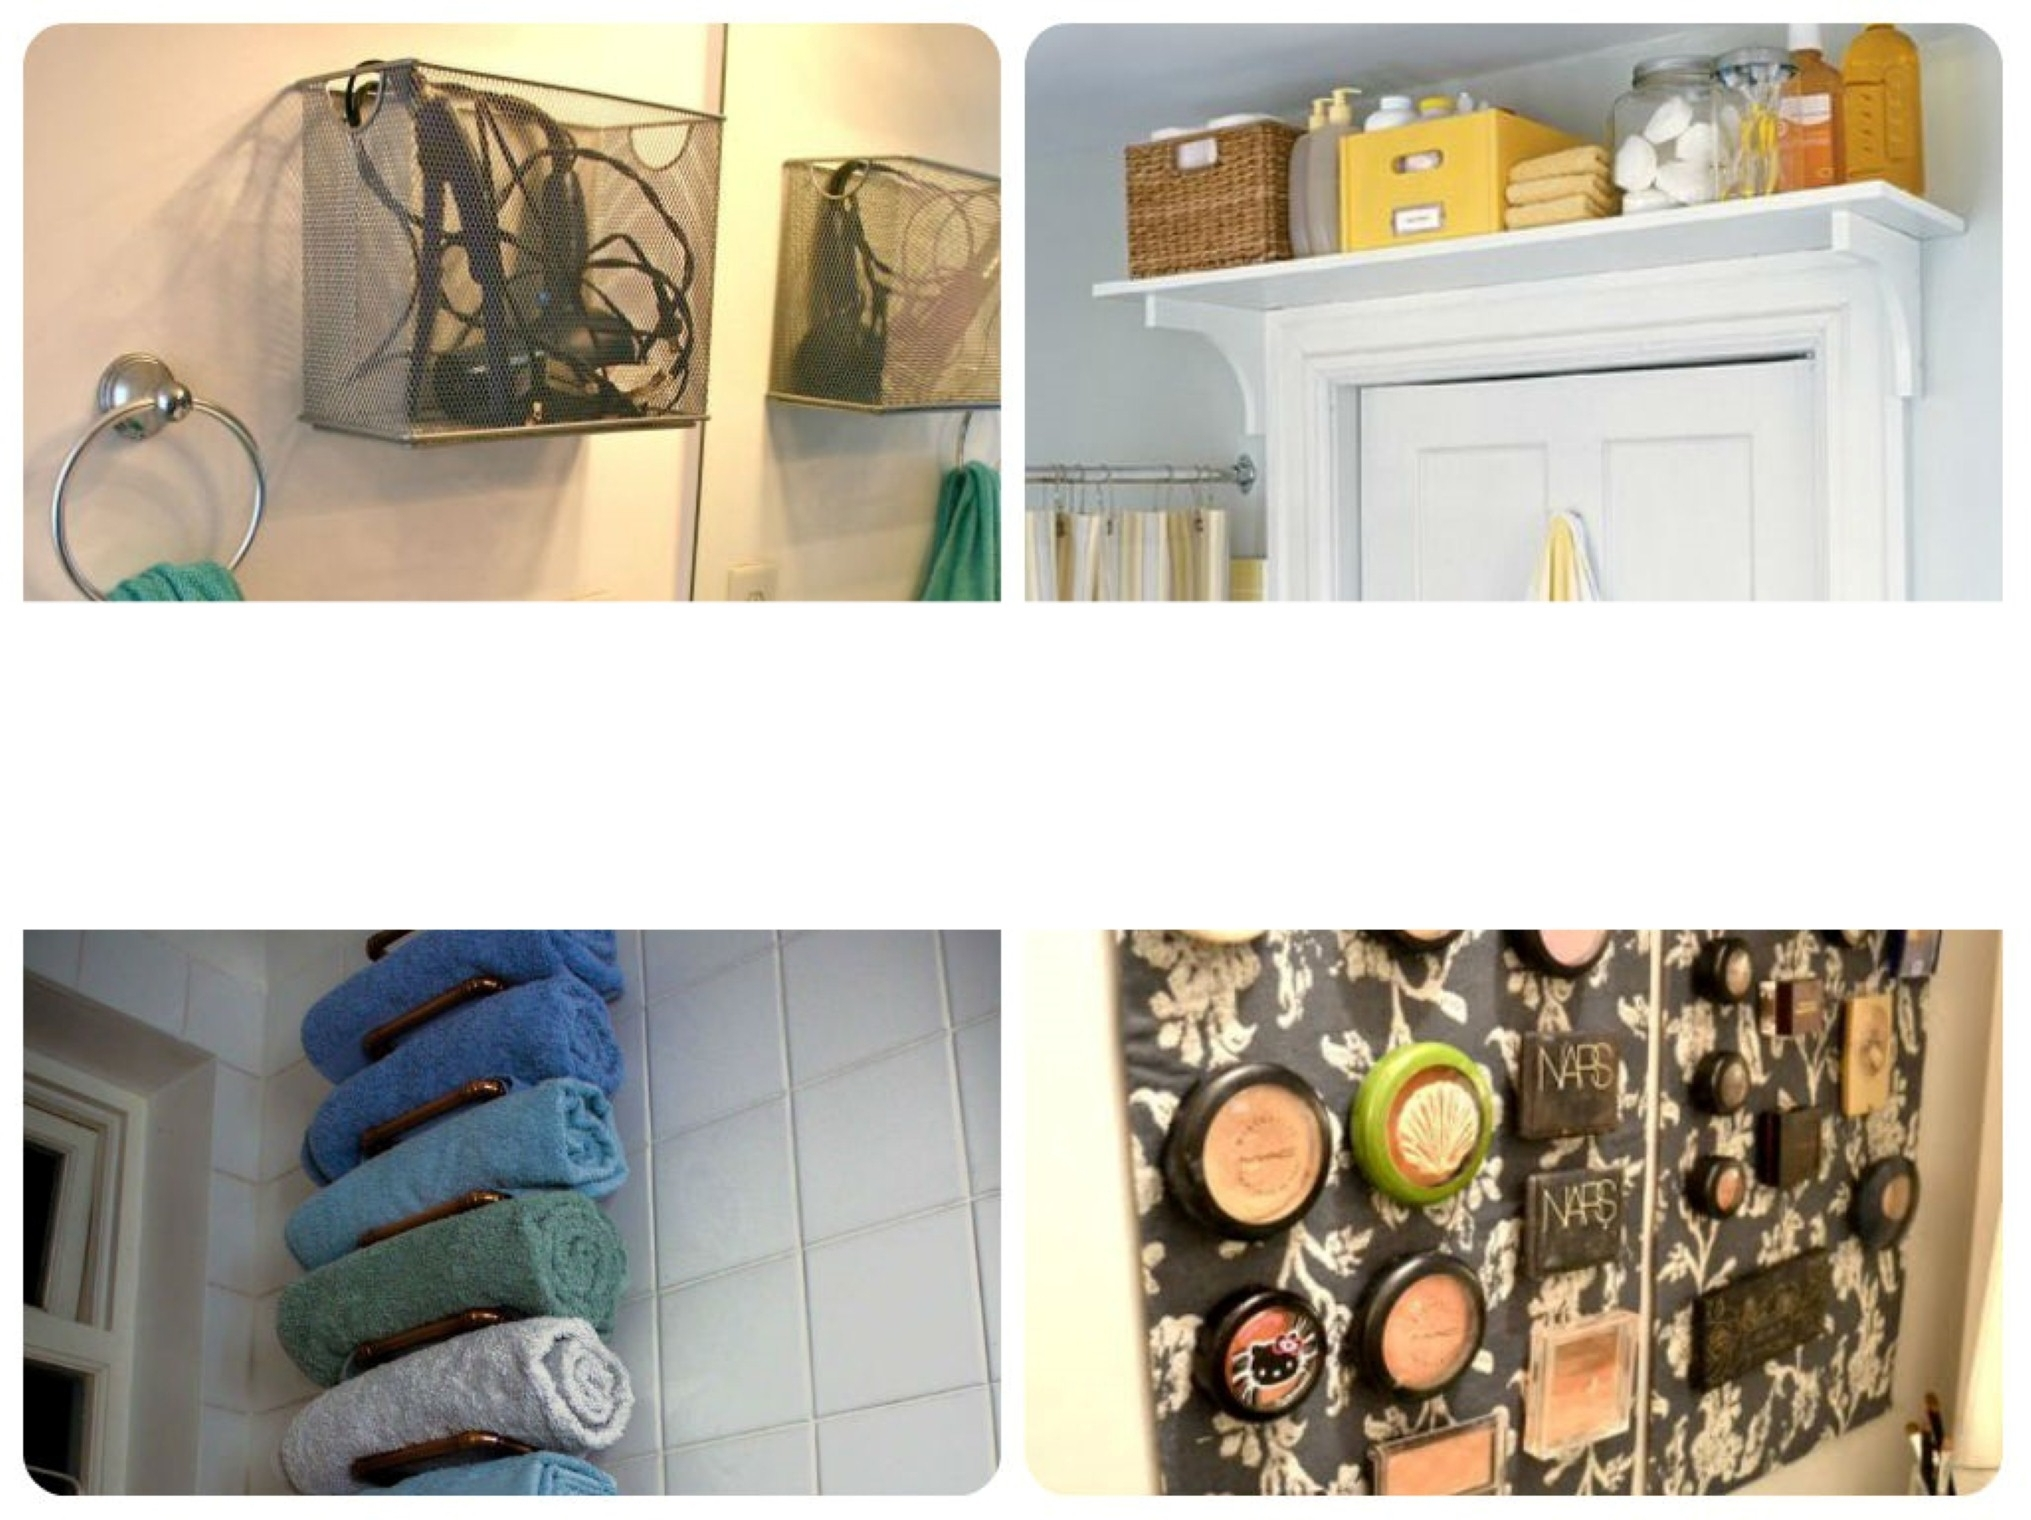 Stylish Bathroom Storage Ideas With Various Examples Of Best Decoration Of Bathroom Inspiration (View 4 of 23)